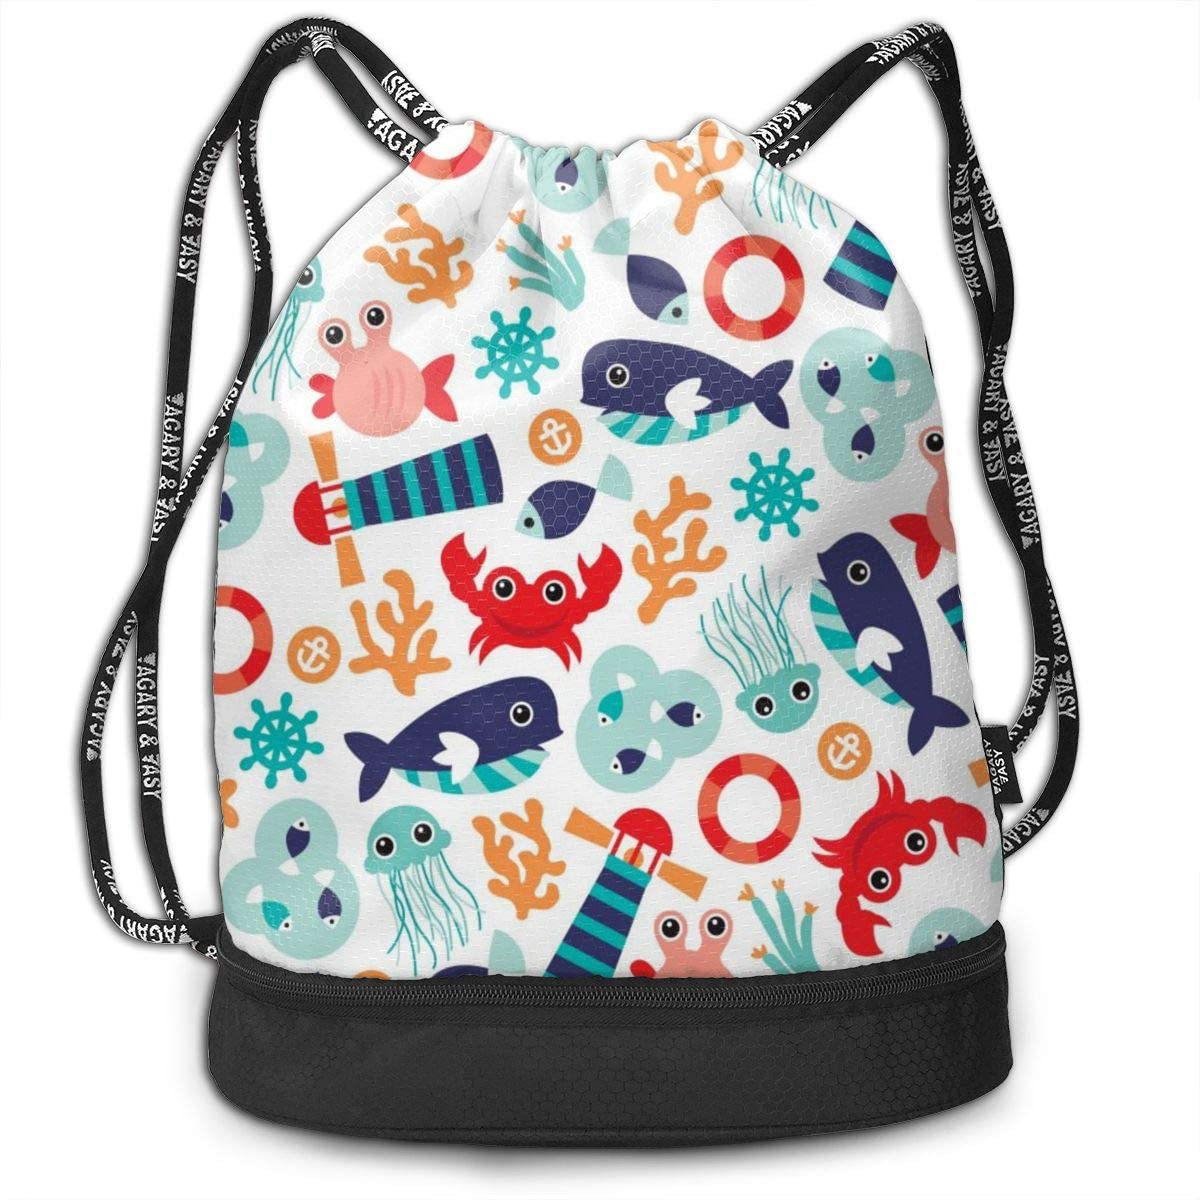 Bundle Backpacks Marine Theme Jelly Fish Gym Sack Drawstring Bags Casual Daypack Yoga Bag School Training Pouch